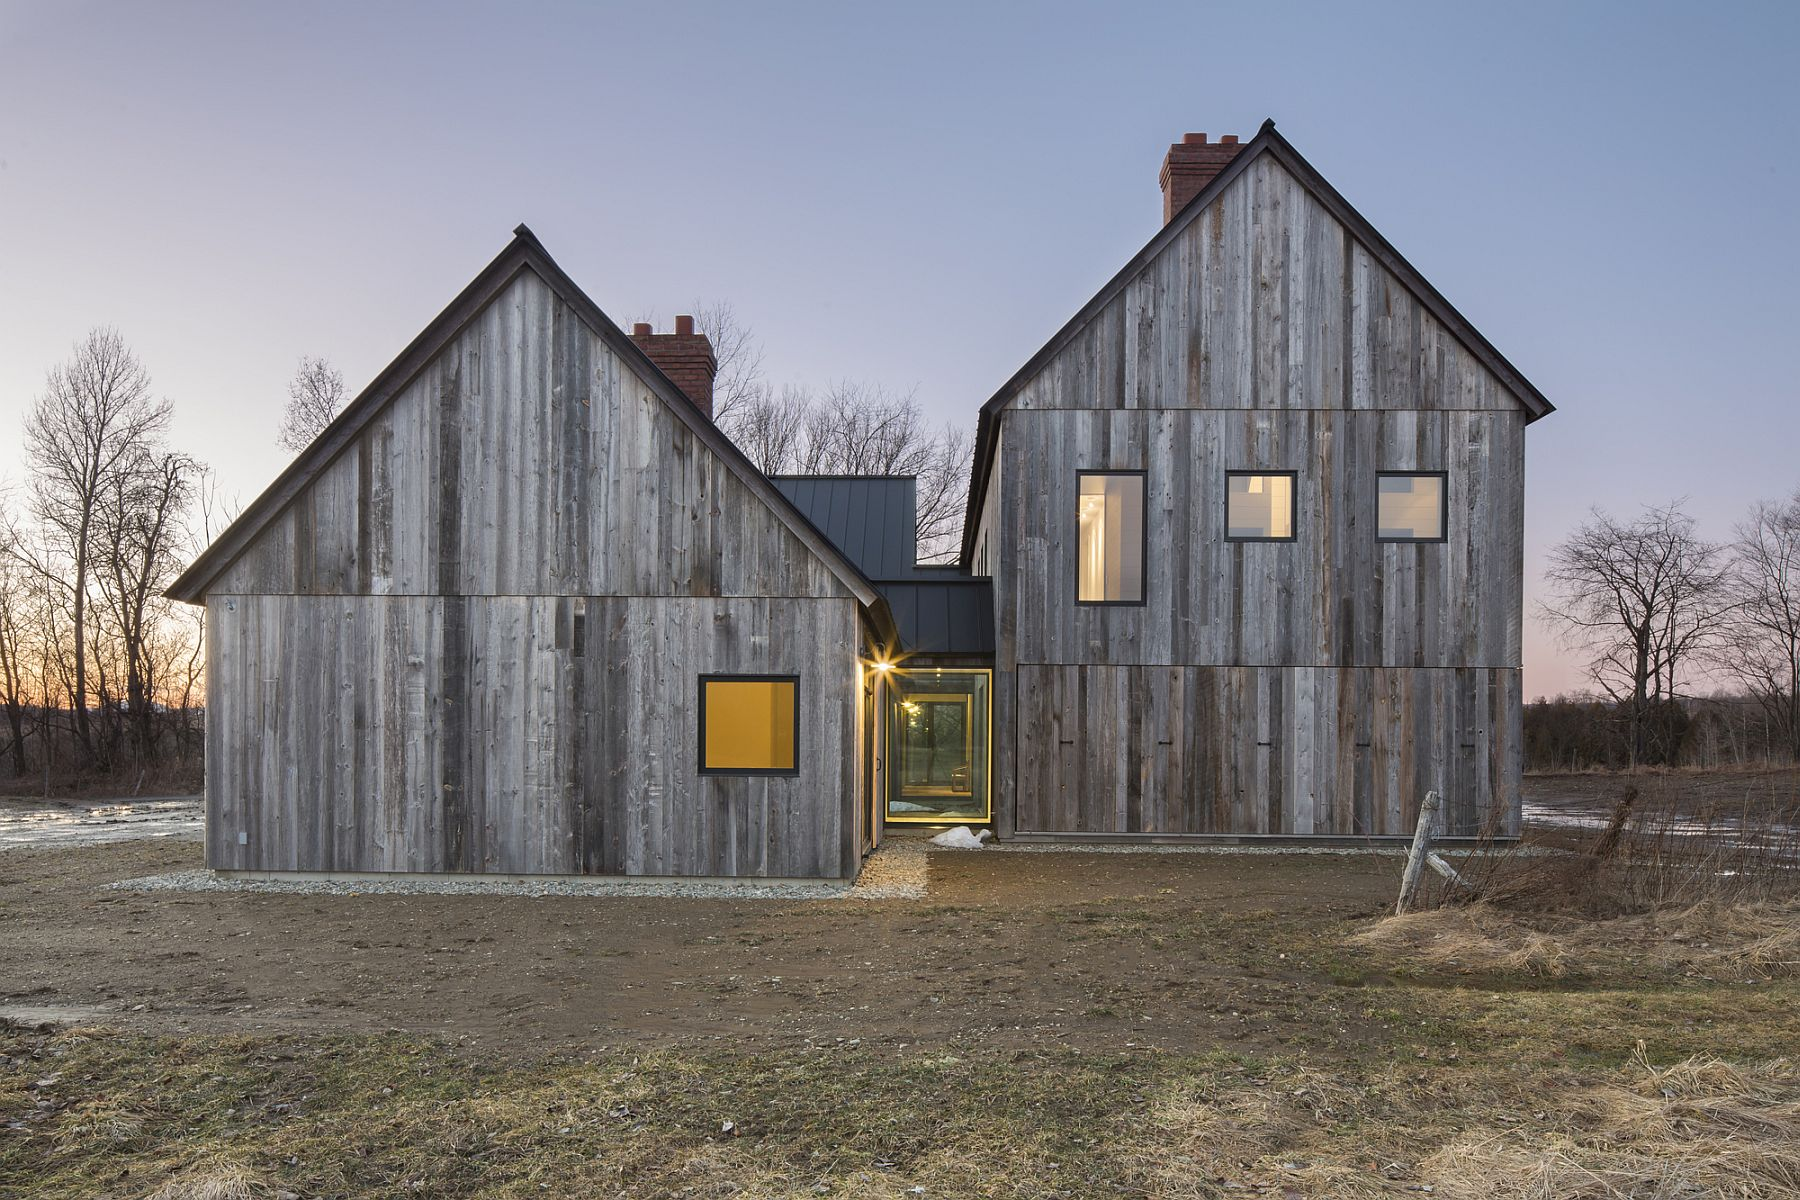 Townships Farmhouse in North Hatley Townships Farmhouse in Quebec Embraces Modernity Wrapped in Rustic Sheen